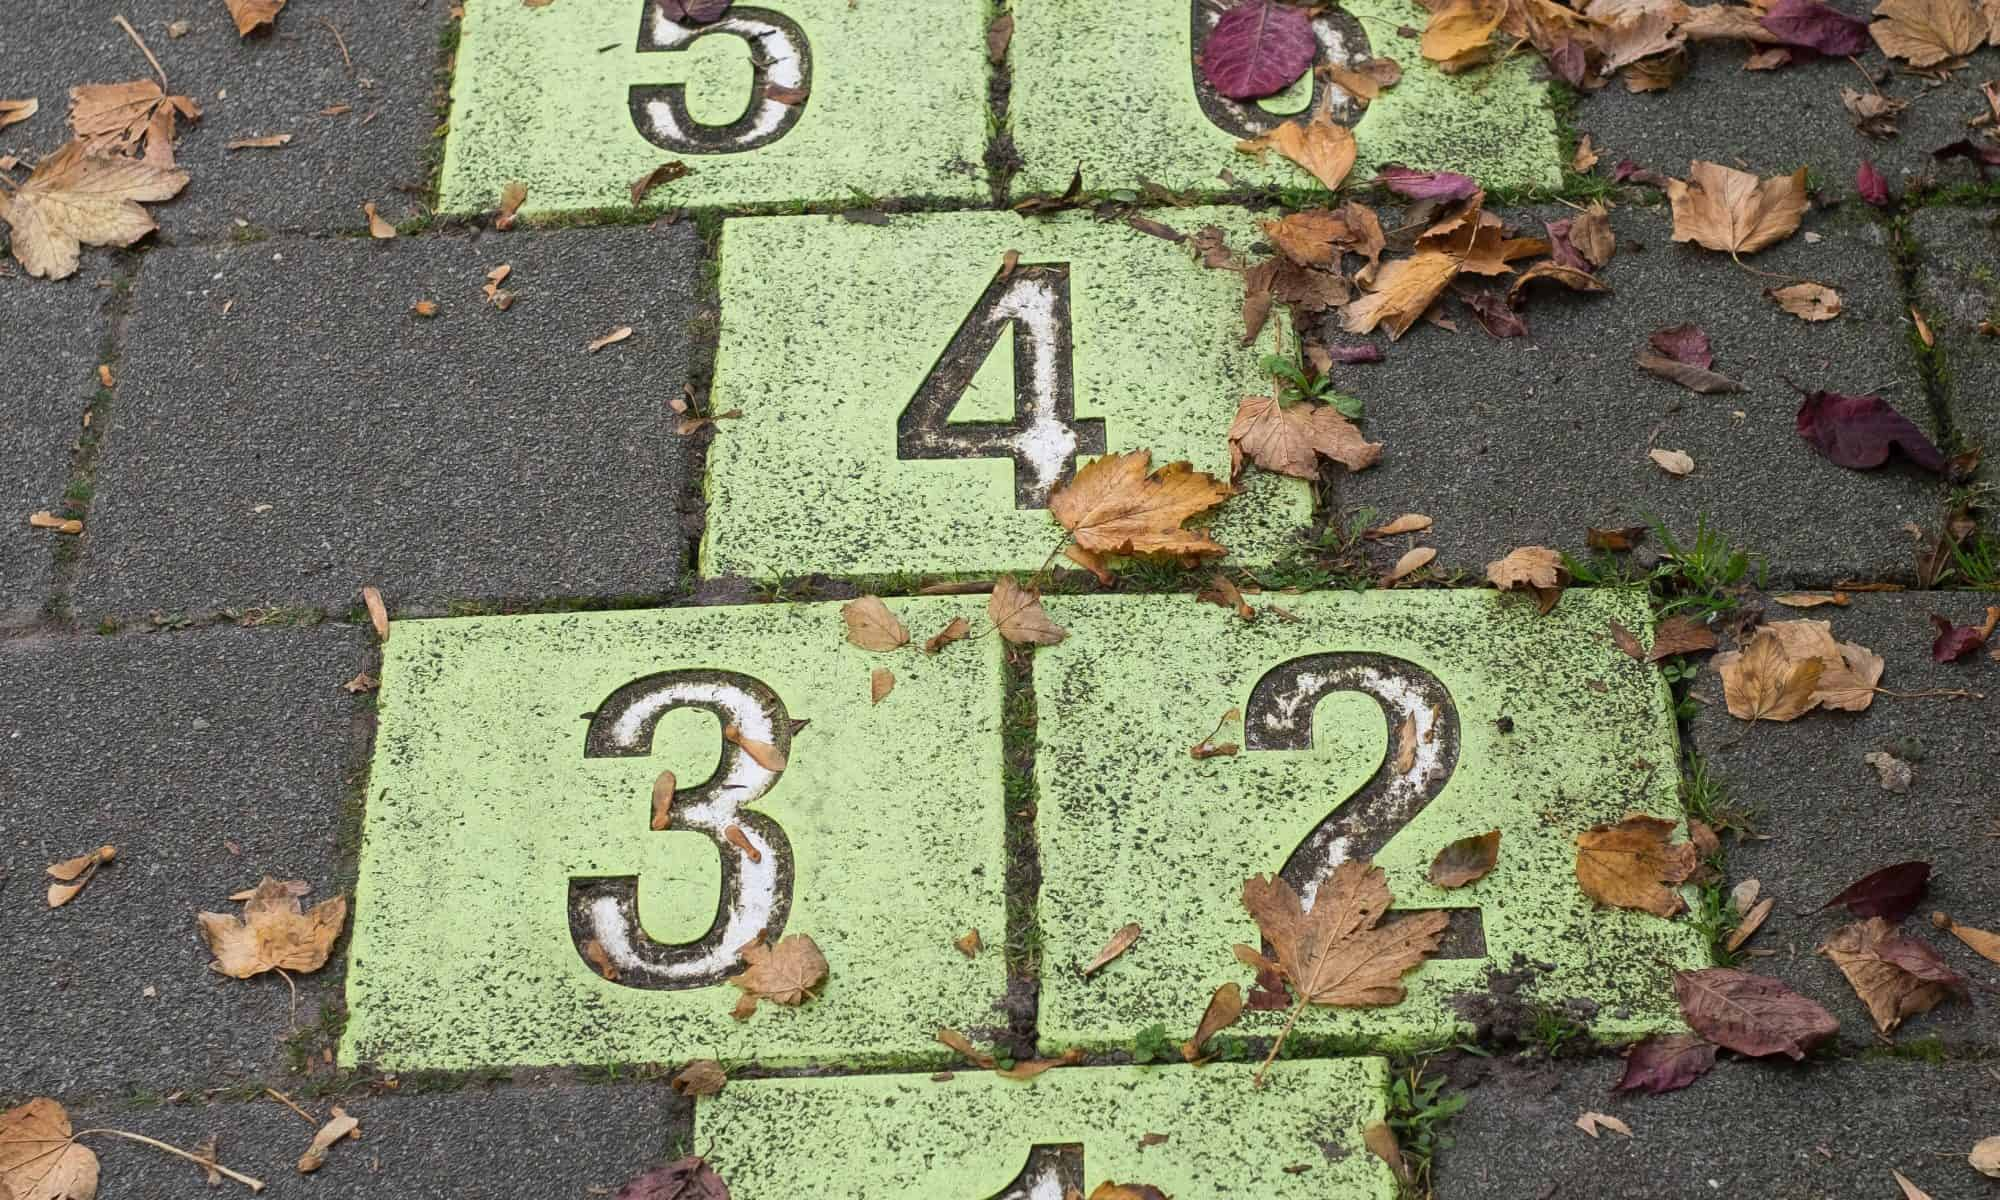 Numbers on ground in the hopscotch form